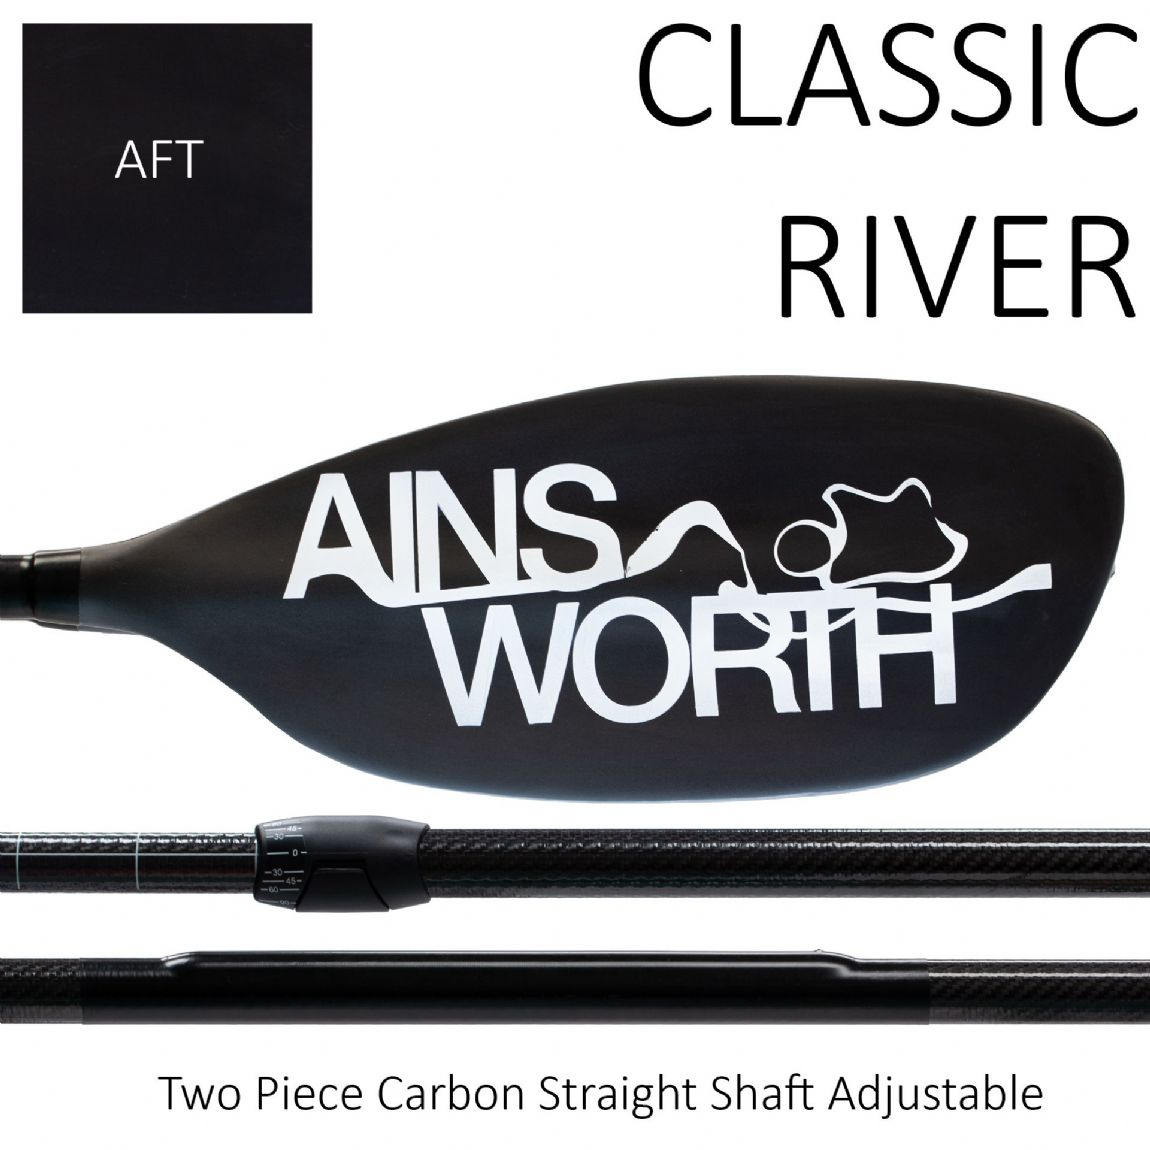 CLASSIC RIVER (AFT)  Two Piece Carbon Straight Shaft Adjustable